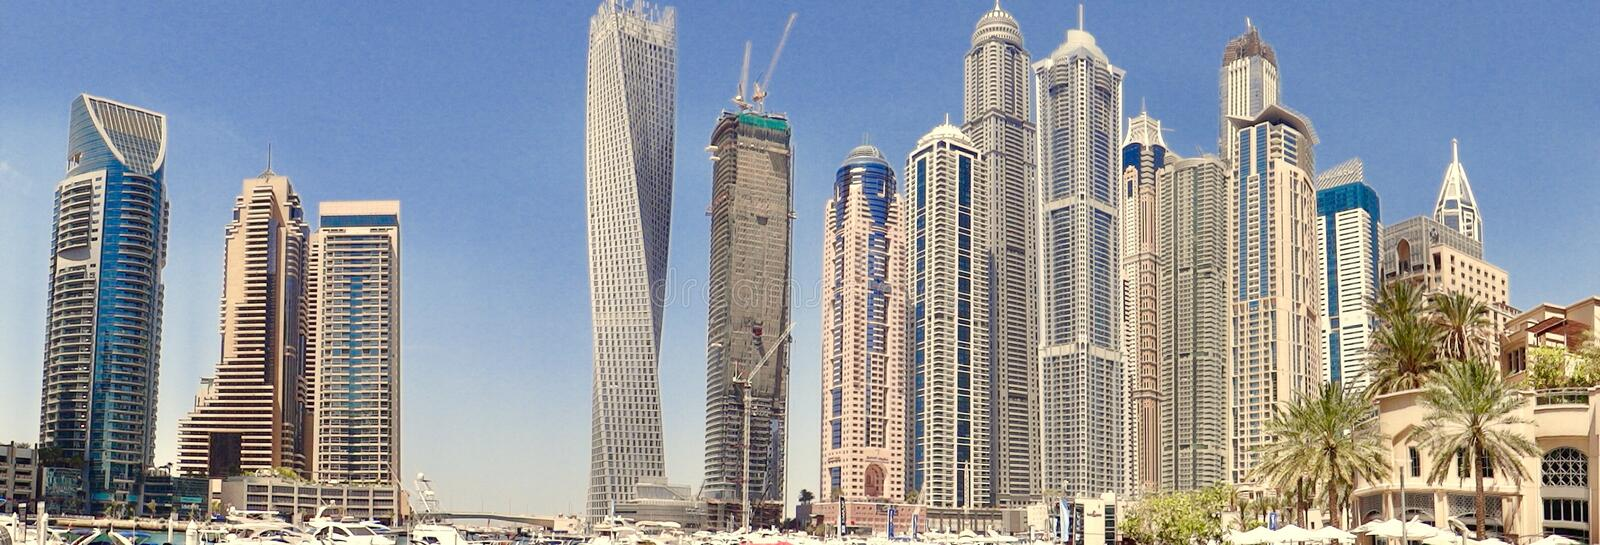 city cityscape dubai building towers twisted building stock image